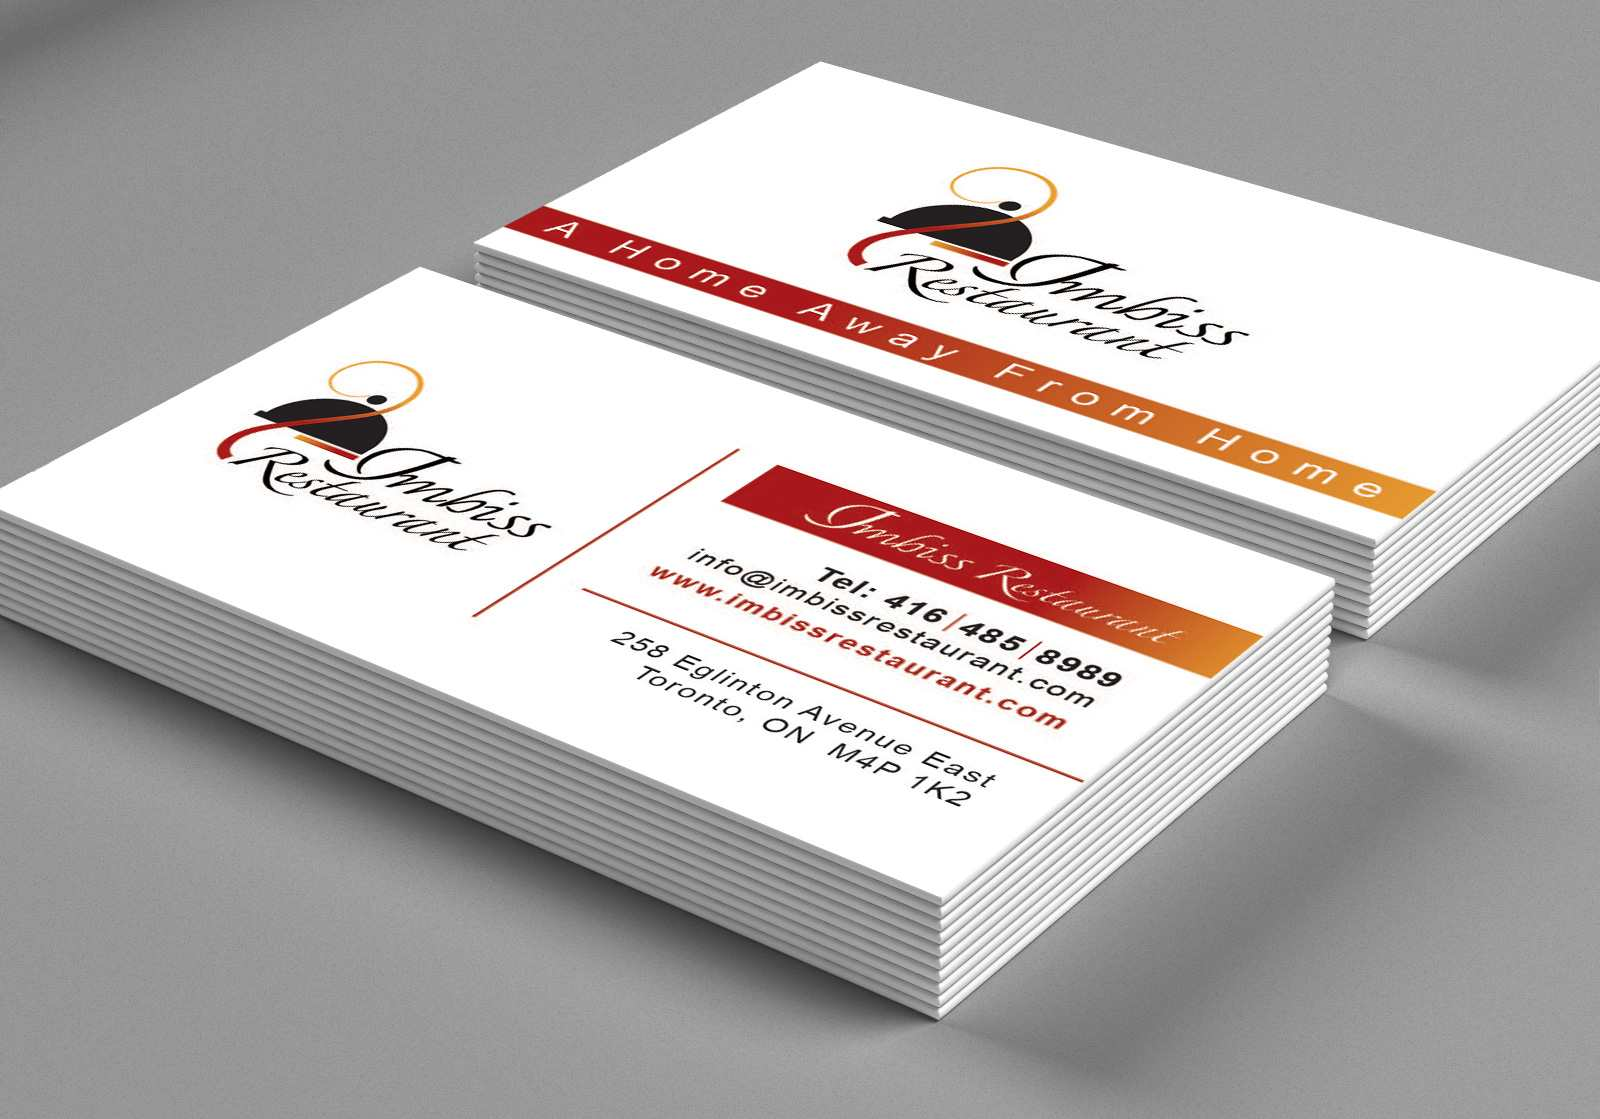 IMBISS Restaurant BusinessCard Design – Lines & Beyond